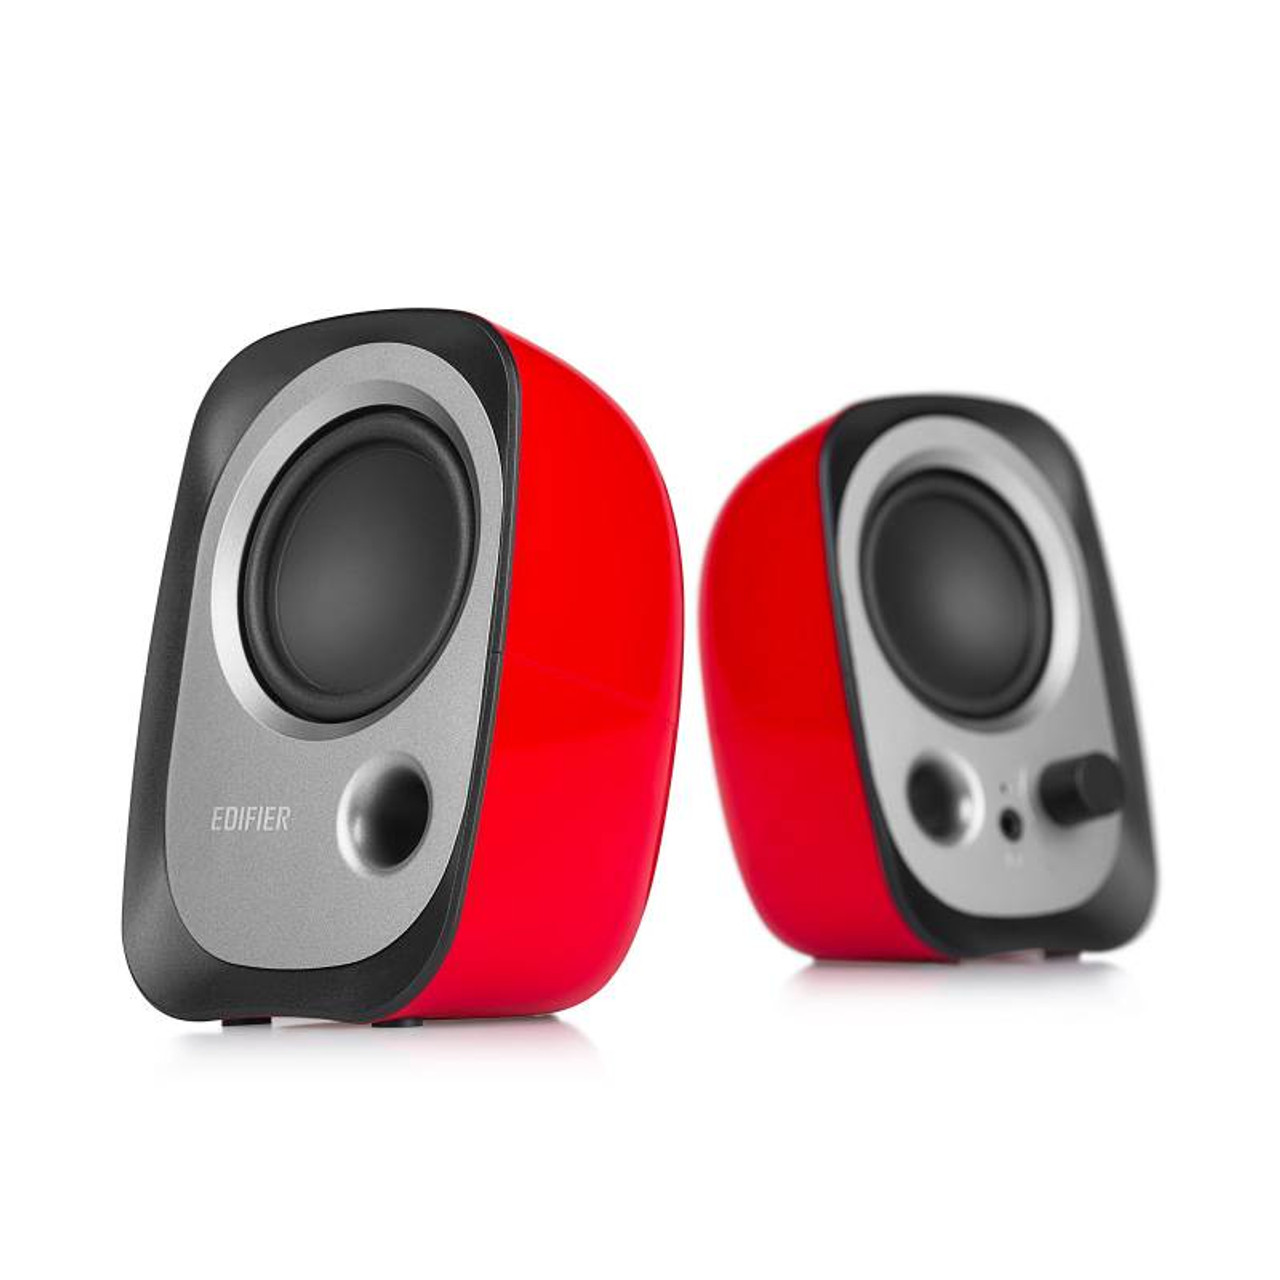 Image for Edifier R12U-R 2.0 Multimedia Speakers - Red CX Computer Superstore